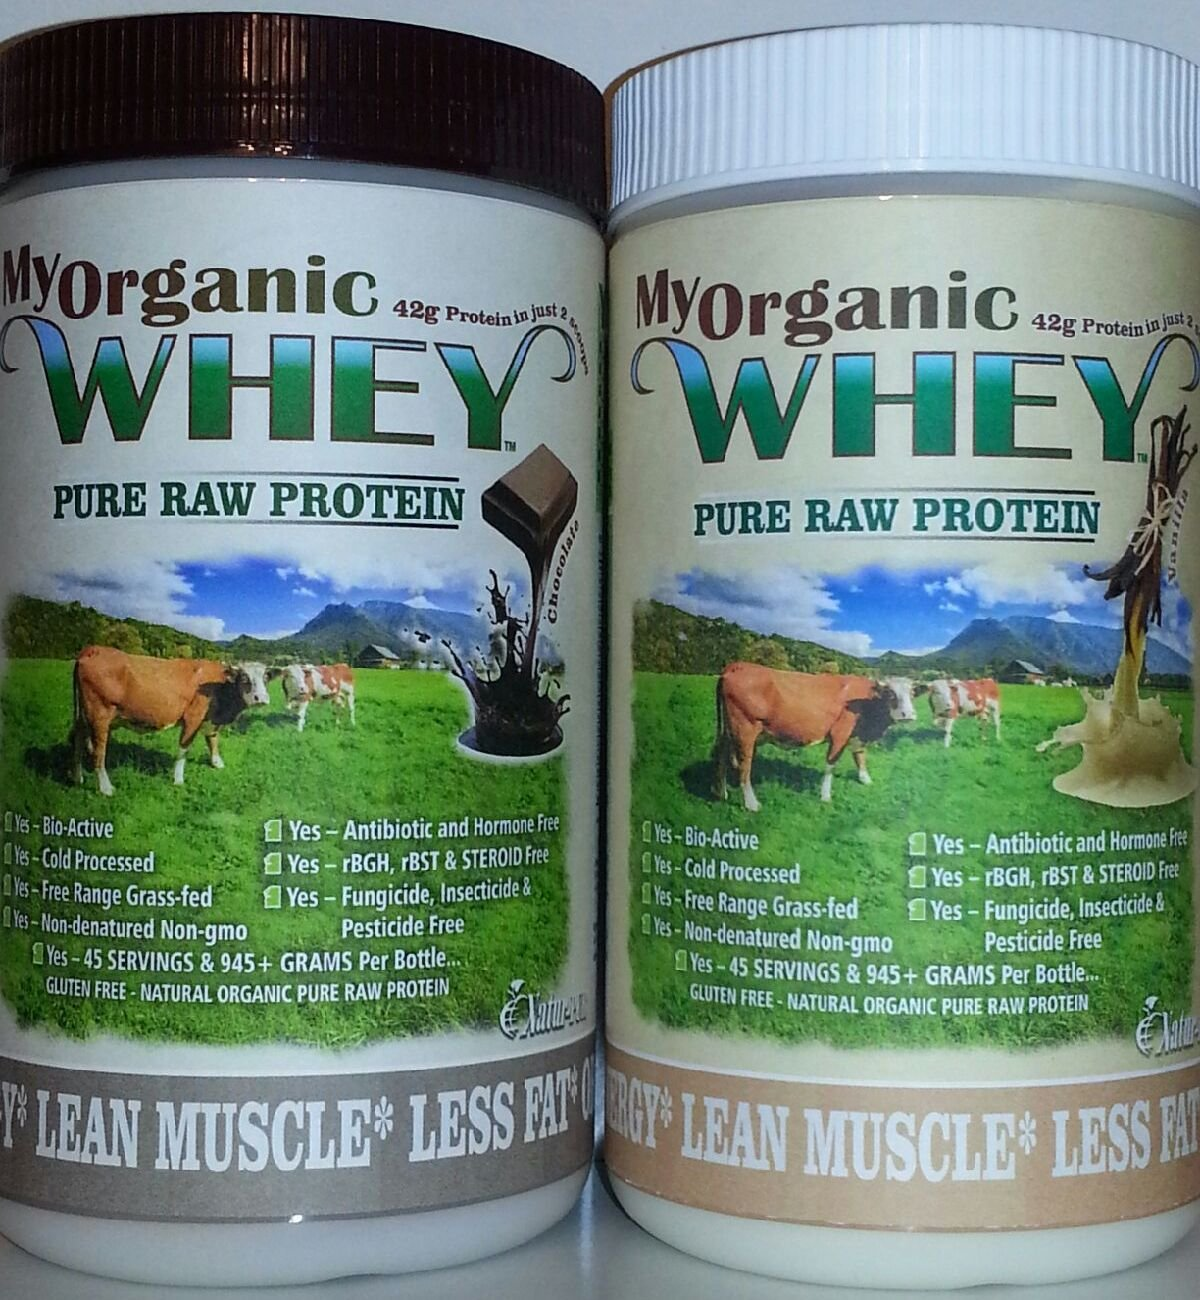 MyWHEY Grass-fed Organic Raw Whey Protein – Bio-active Cold Process Grade-A Milk Hormone-free Non-gmo Organic Whey Concentrated Powder Vanilla 1lb 945g Protein 45 Serving 1.11 by Natur-Pur